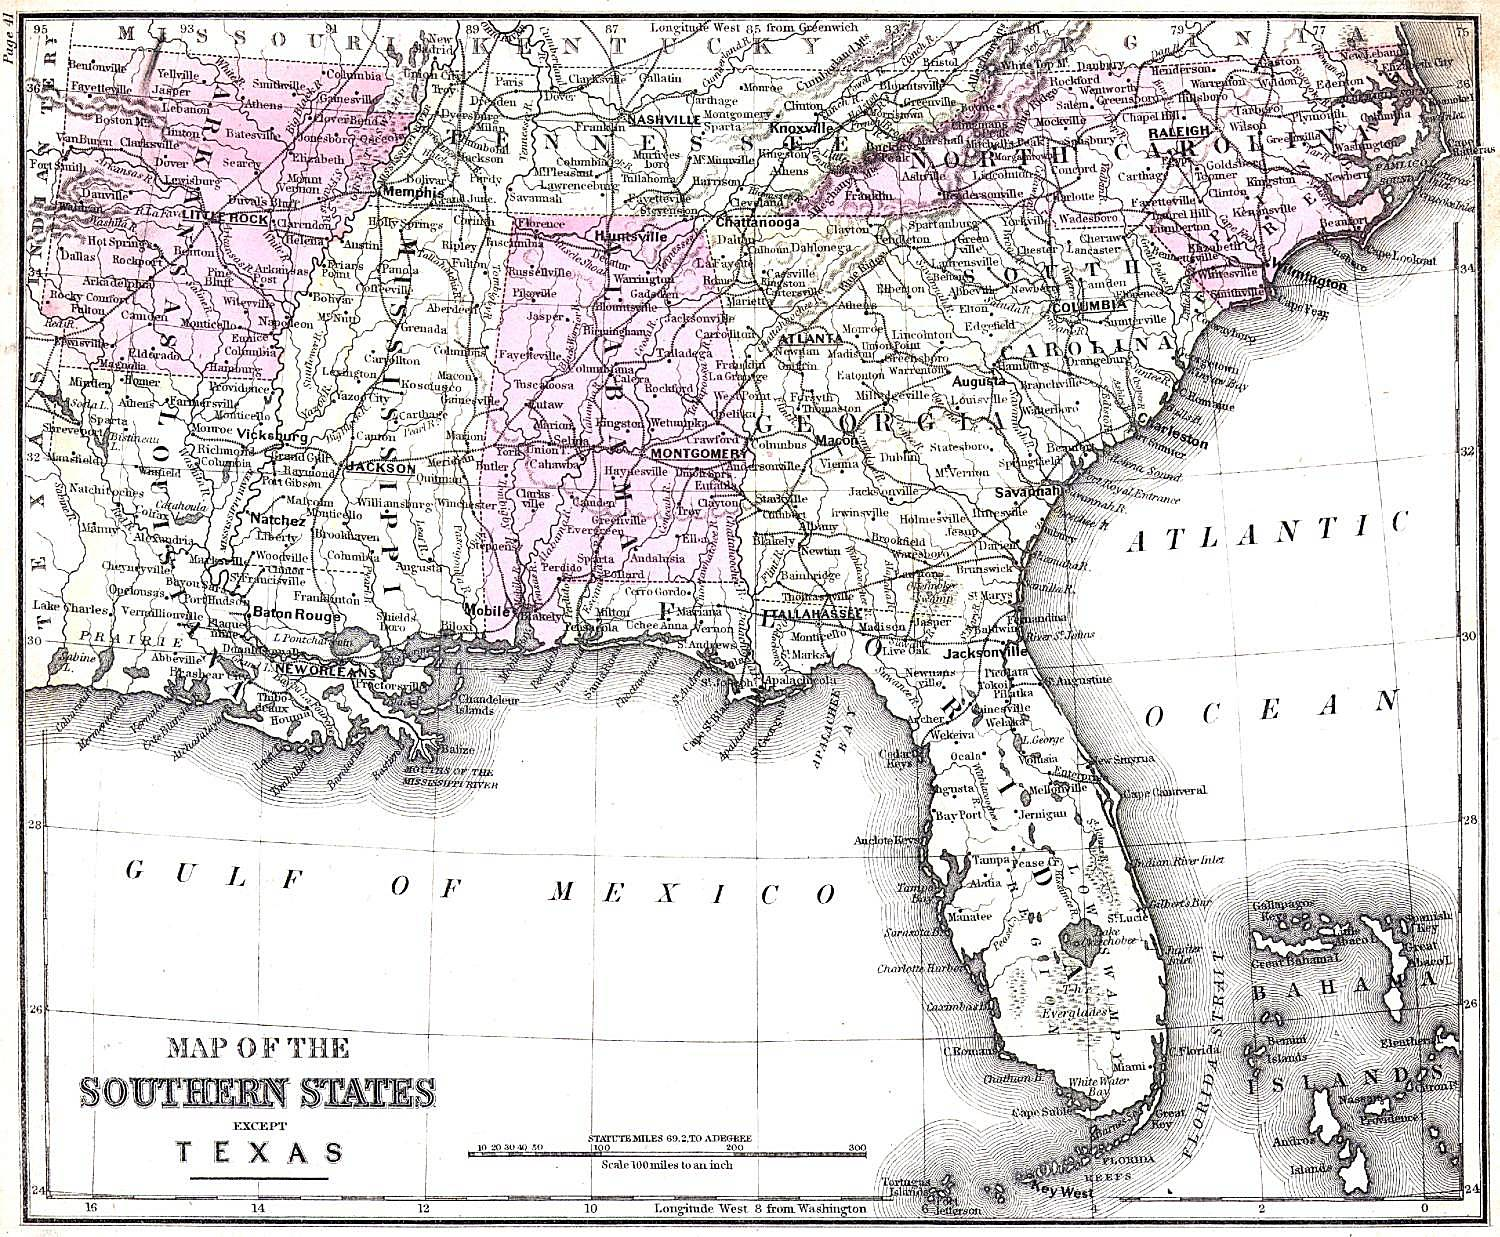 Alabama Maps Alabama Digital Map Library Table Of Contents - State map of florida with cities